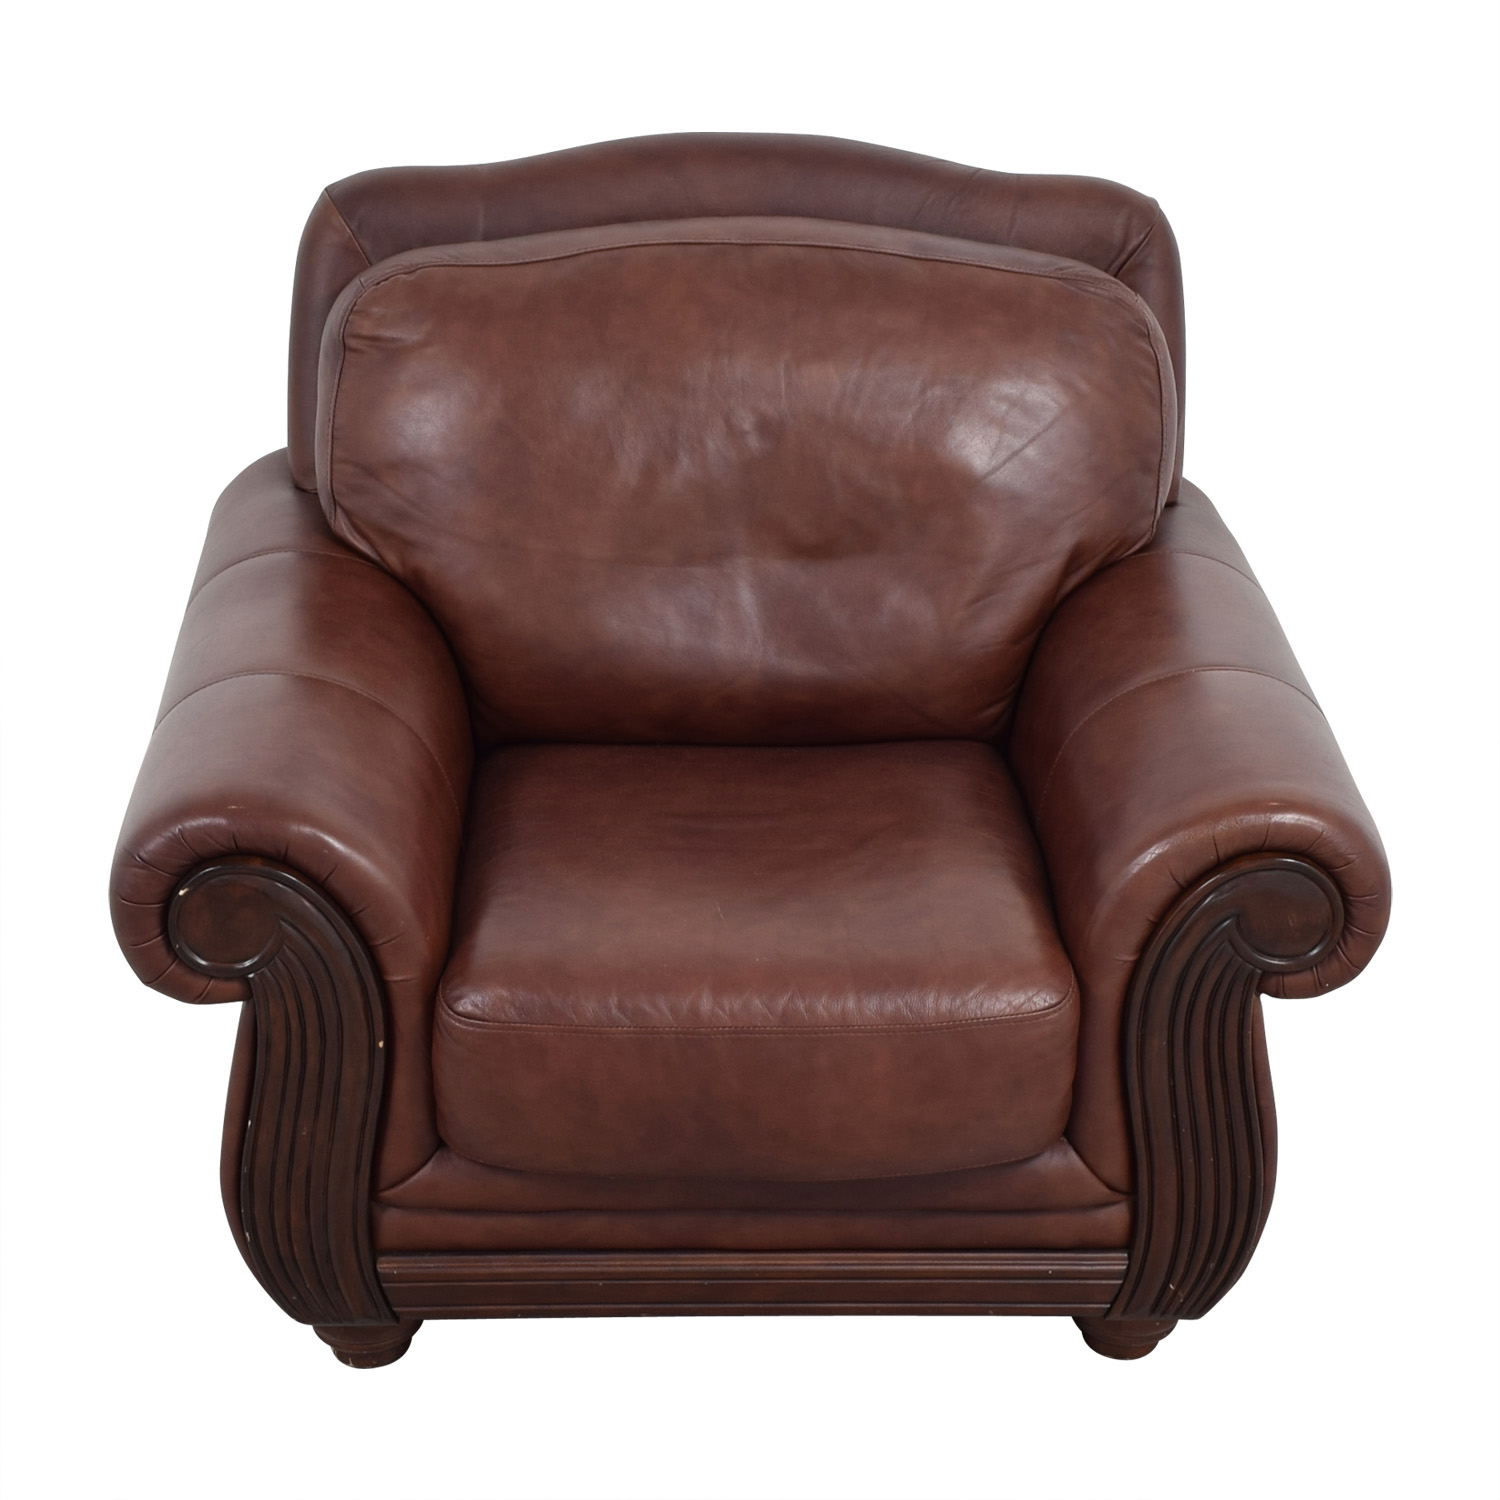 accent chairs to go with brown leather sofa how clean spots on fabric 69 off rooms